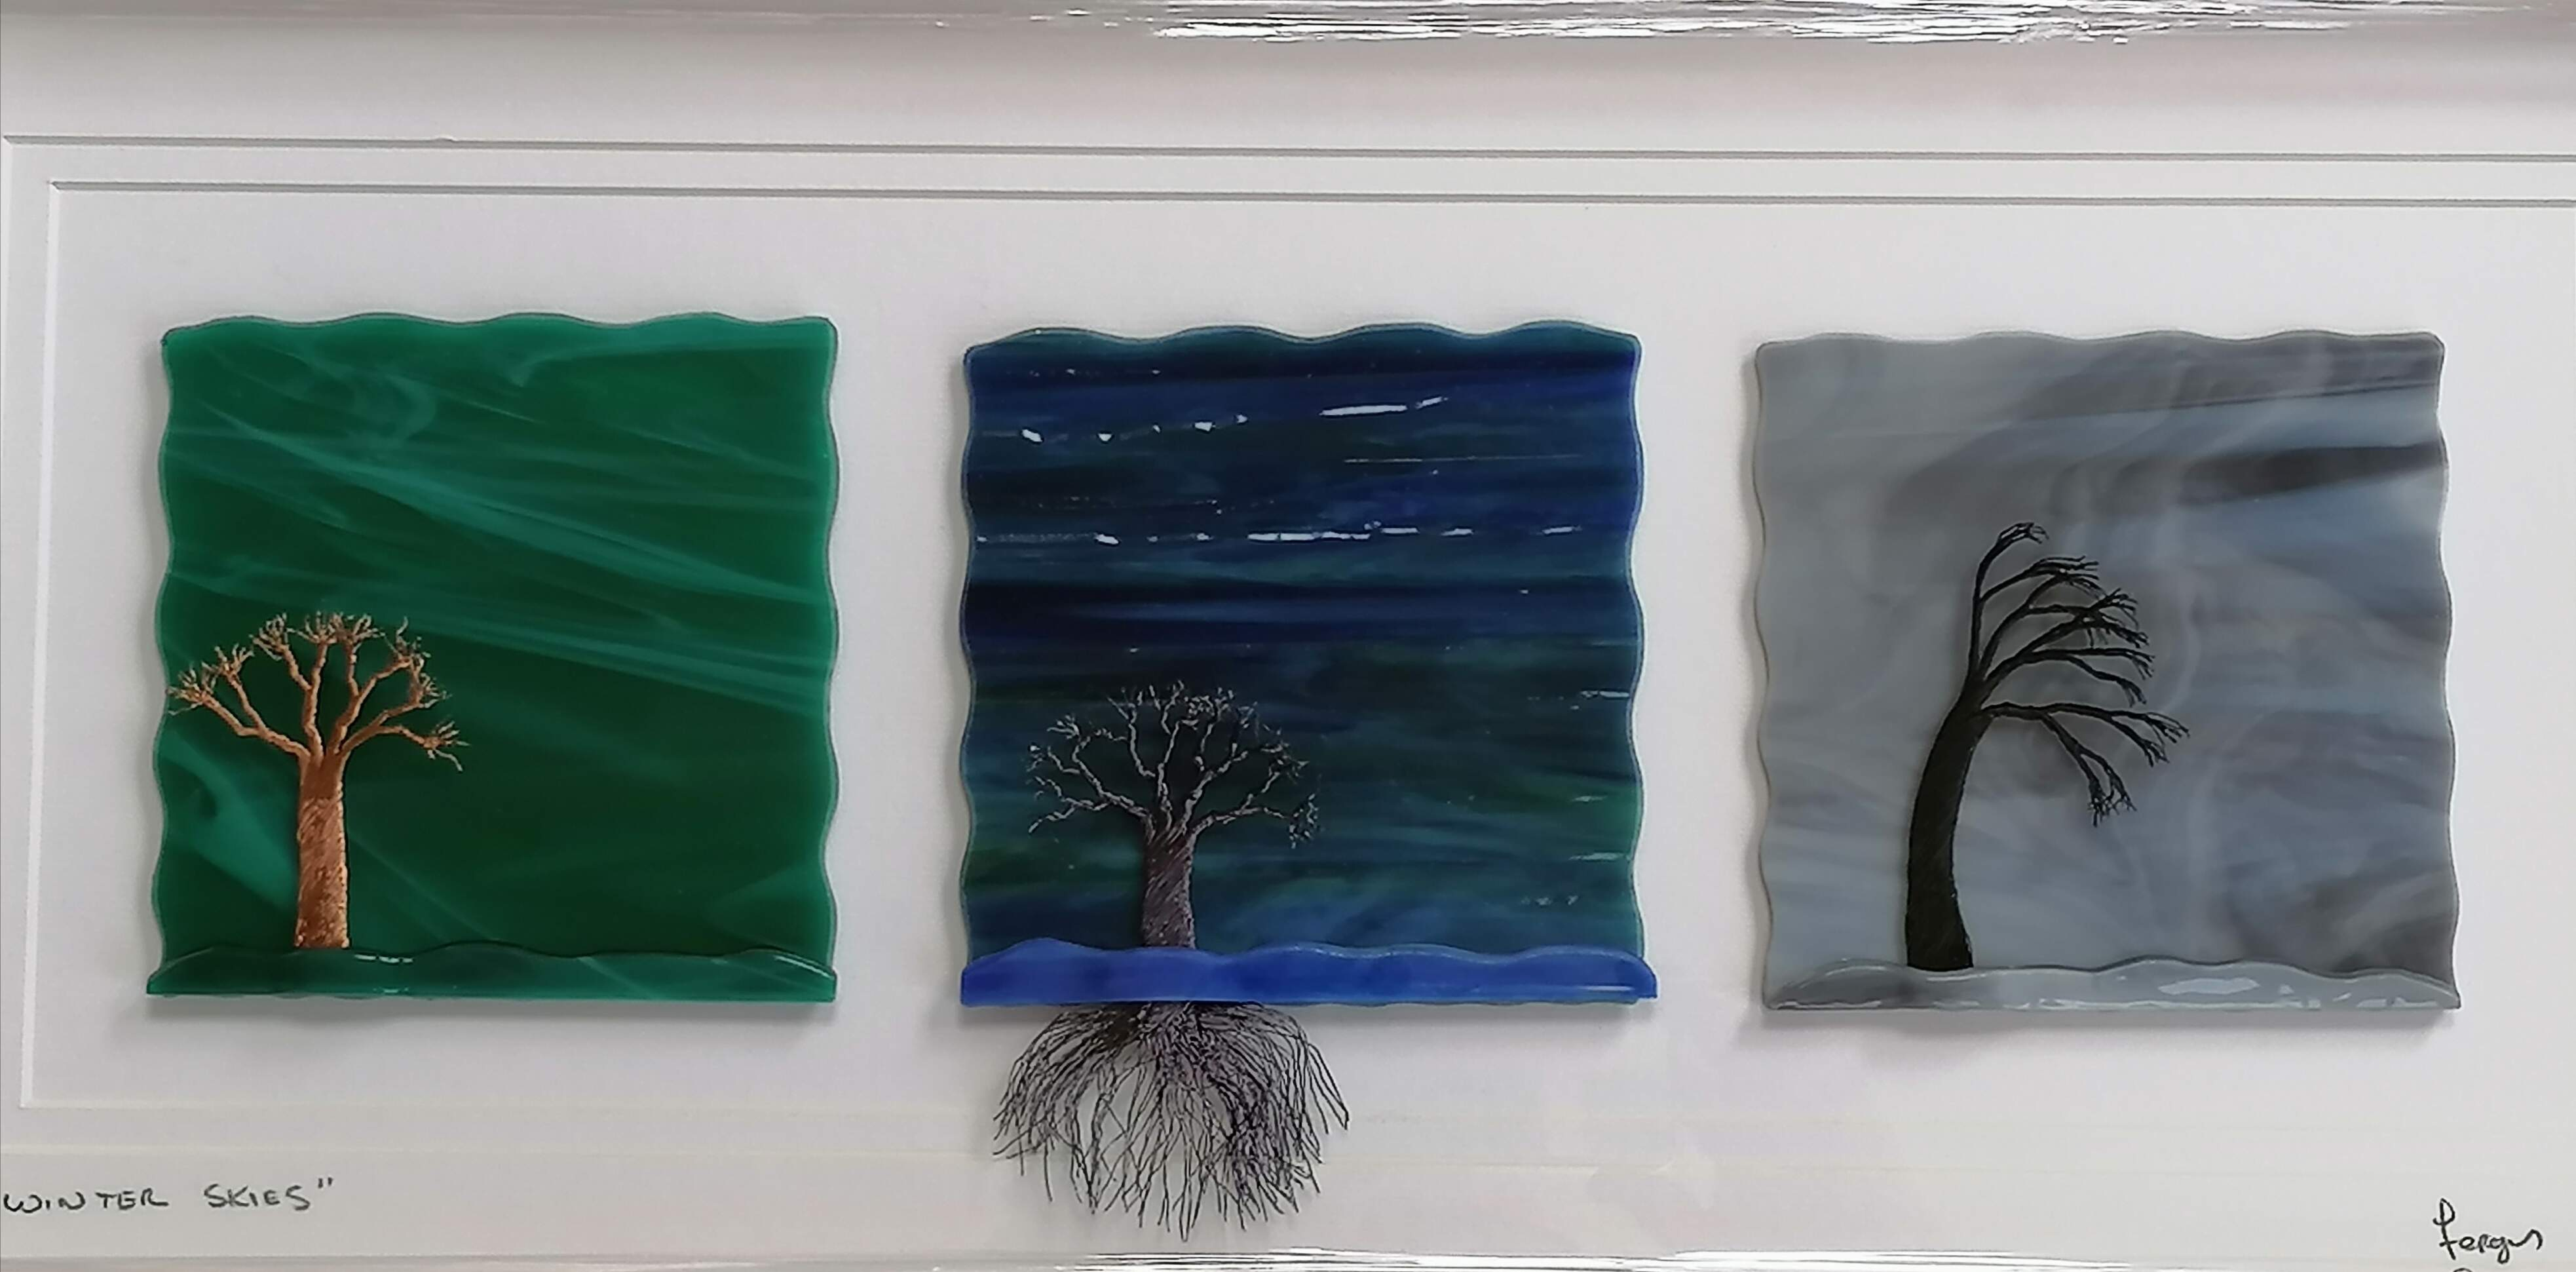 3 panels of Glass Art, with handmade copper wire Trees, finished in a white wooden frame.